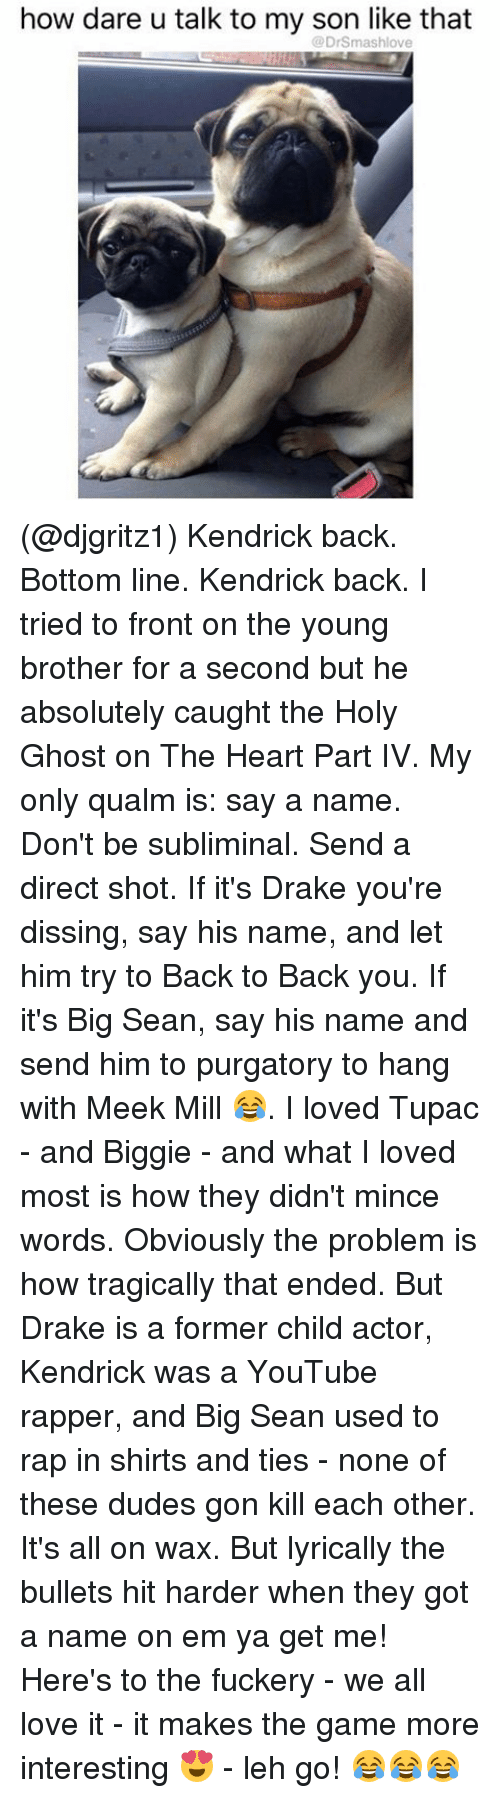 hanged: how dare u talk to my son like that  @DrSmashlove (@djgritz1) Kendrick back. Bottom line. Kendrick back. I tried to front on the young brother for a second but he absolutely caught the Holy Ghost on The Heart Part IV. My only qualm is: say a name. Don't be subliminal. Send a direct shot. If it's Drake you're dissing, say his name, and let him try to Back to Back you. If it's Big Sean, say his name and send him to purgatory to hang with Meek Mill 😂. I loved Tupac - and Biggie - and what I loved most is how they didn't mince words. Obviously the problem is how tragically that ended. But Drake is a former child actor, Kendrick was a YouTube rapper, and Big Sean used to rap in shirts and ties - none of these dudes gon kill each other. It's all on wax. But lyrically the bullets hit harder when they got a name on em ya get me! Here's to the fuckery - we all love it - it makes the game more interesting 😍 - leh go! 😂😂😂